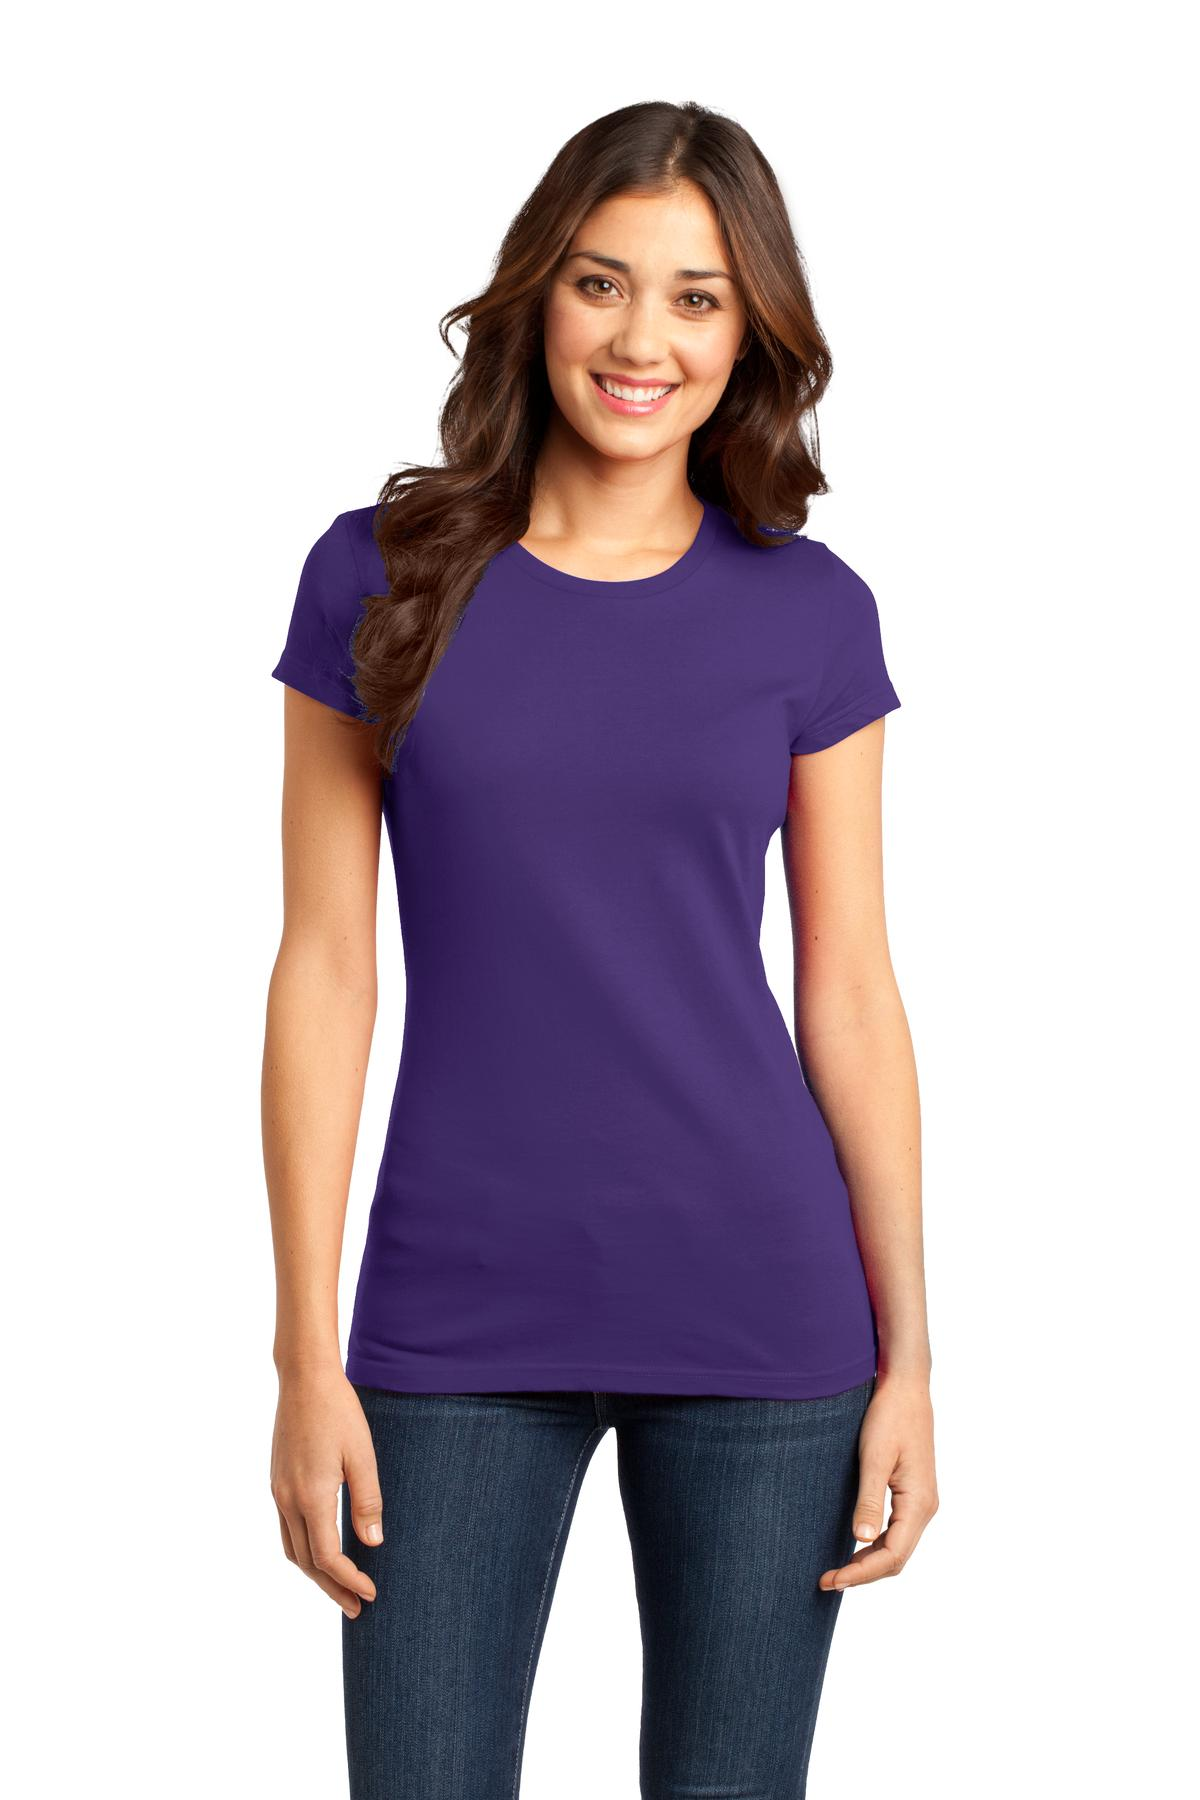 District ®  Women's Fitted Very Important Tee ® . DT6001 - Purple